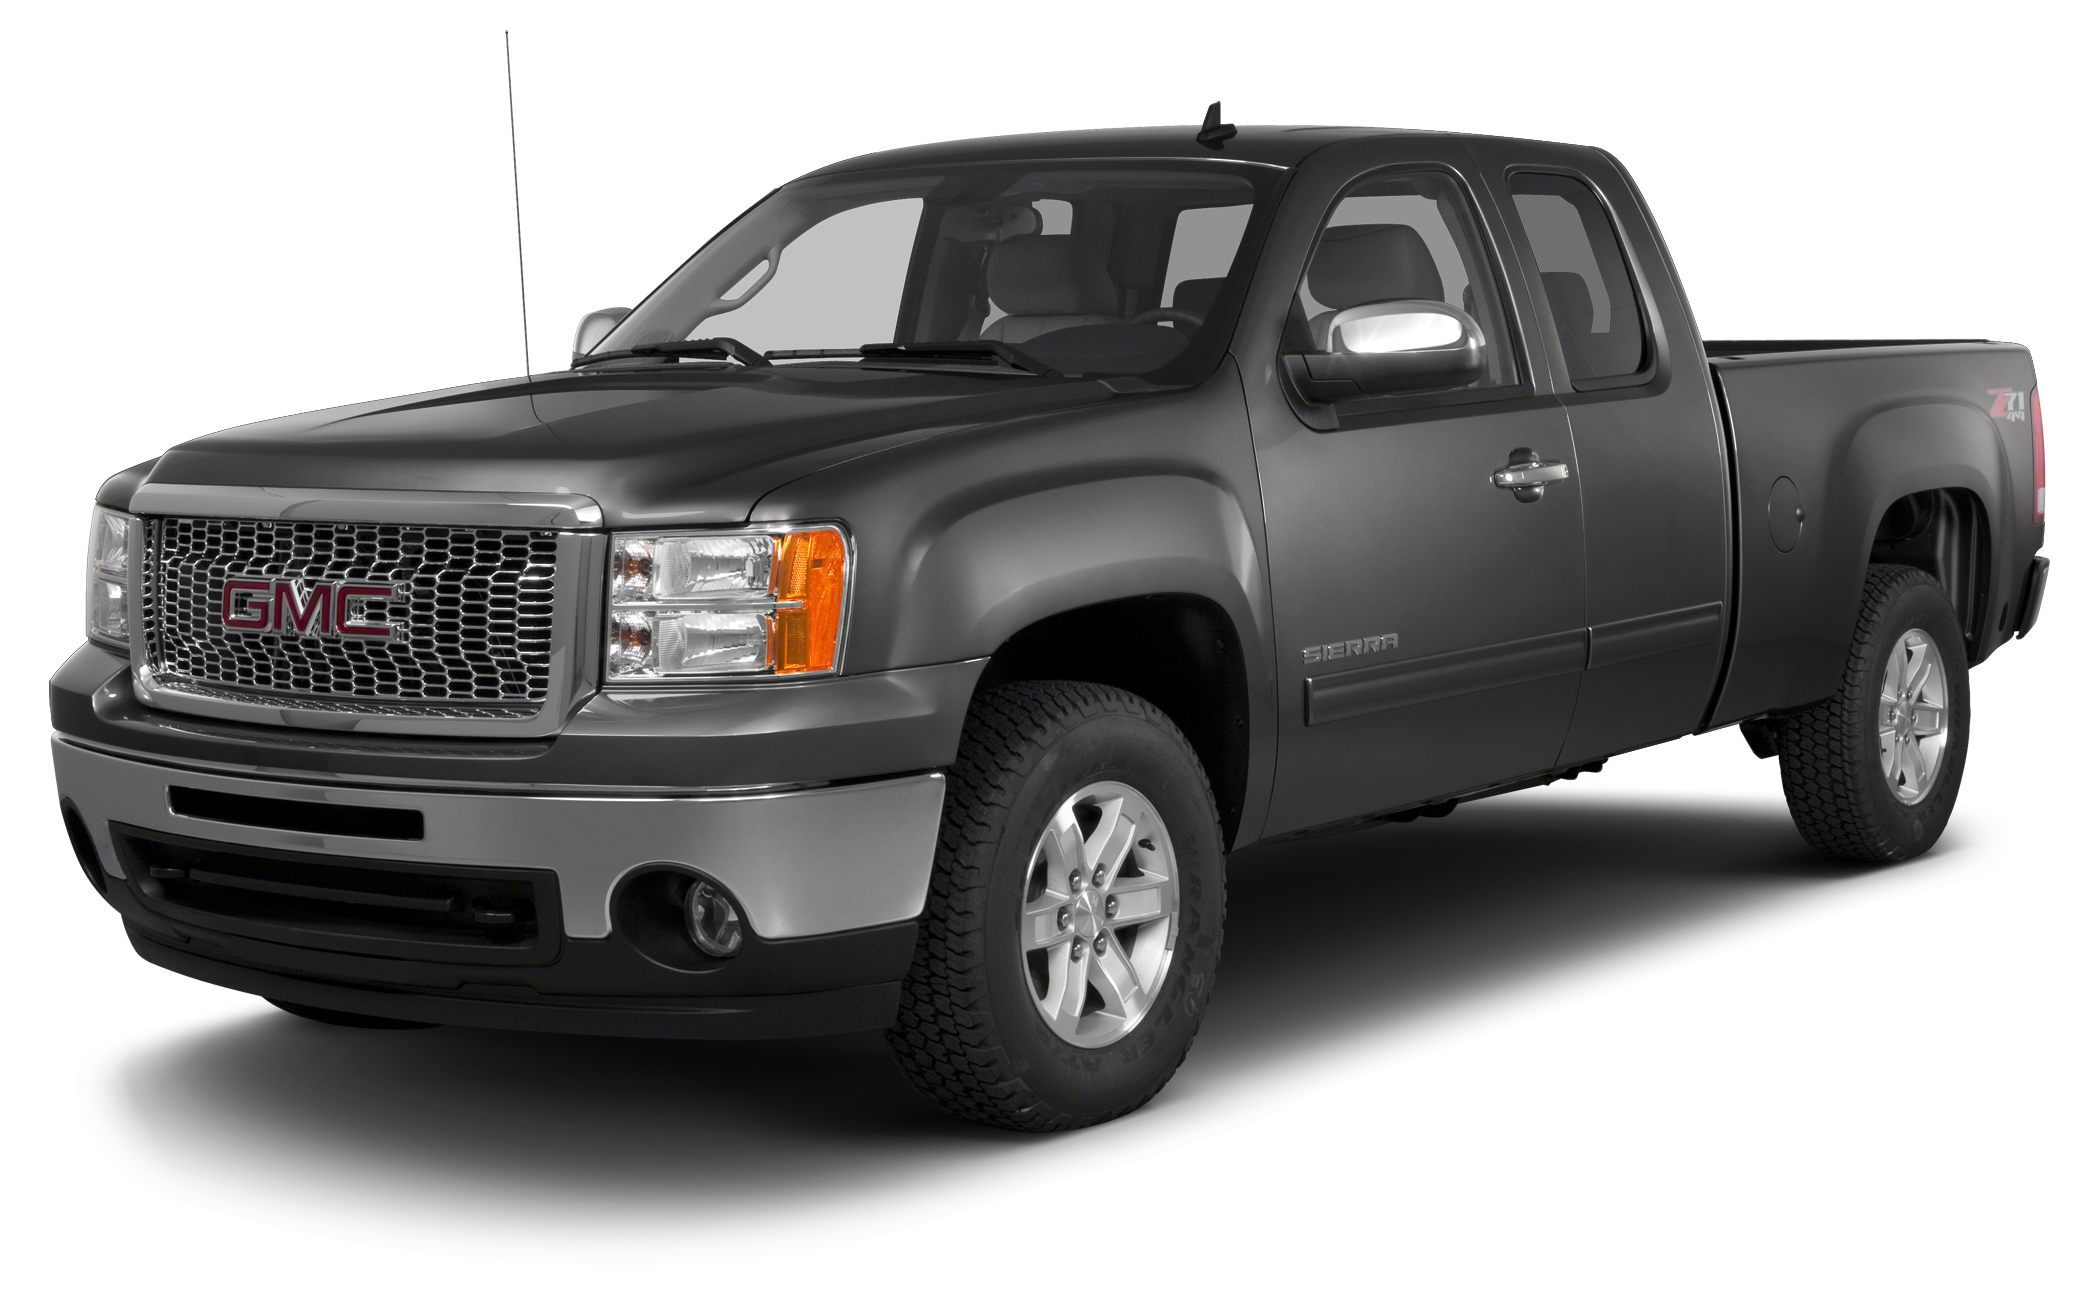 2013 GMC Sierra 1500 SLE Thank you for visiting Parkway Buick GMC we hope that this vehicle is the